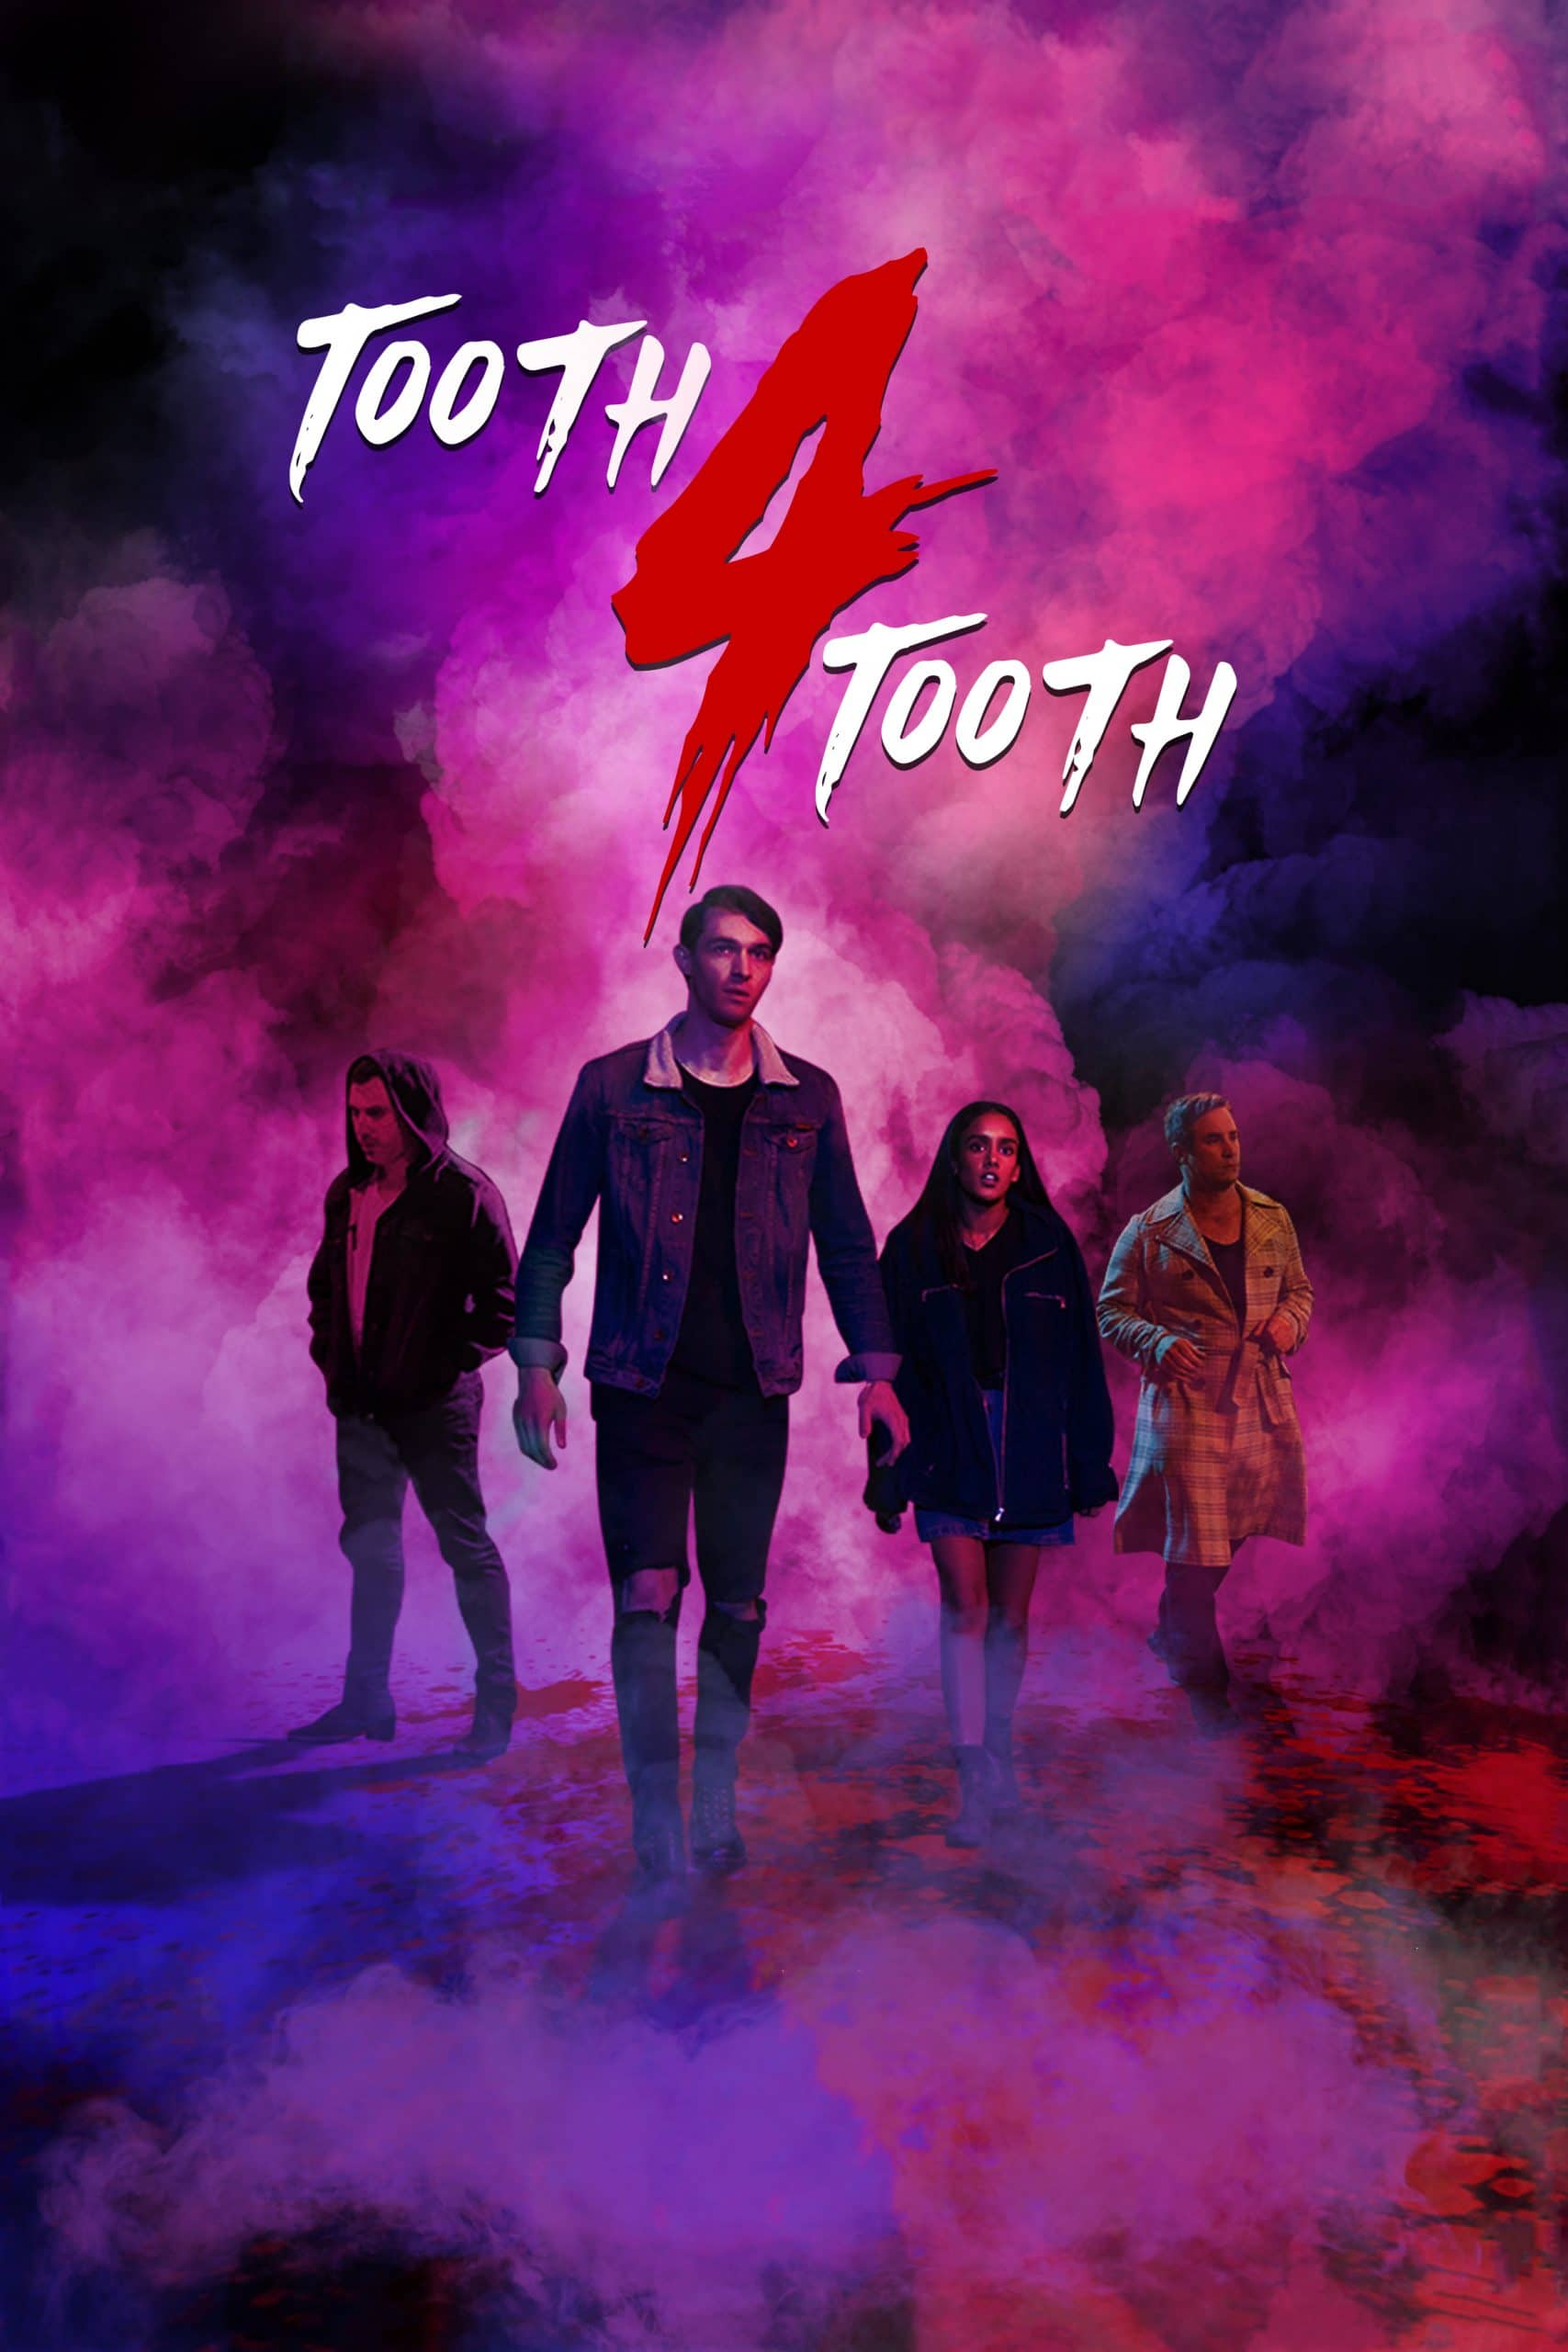 Tooth 4 Tooth